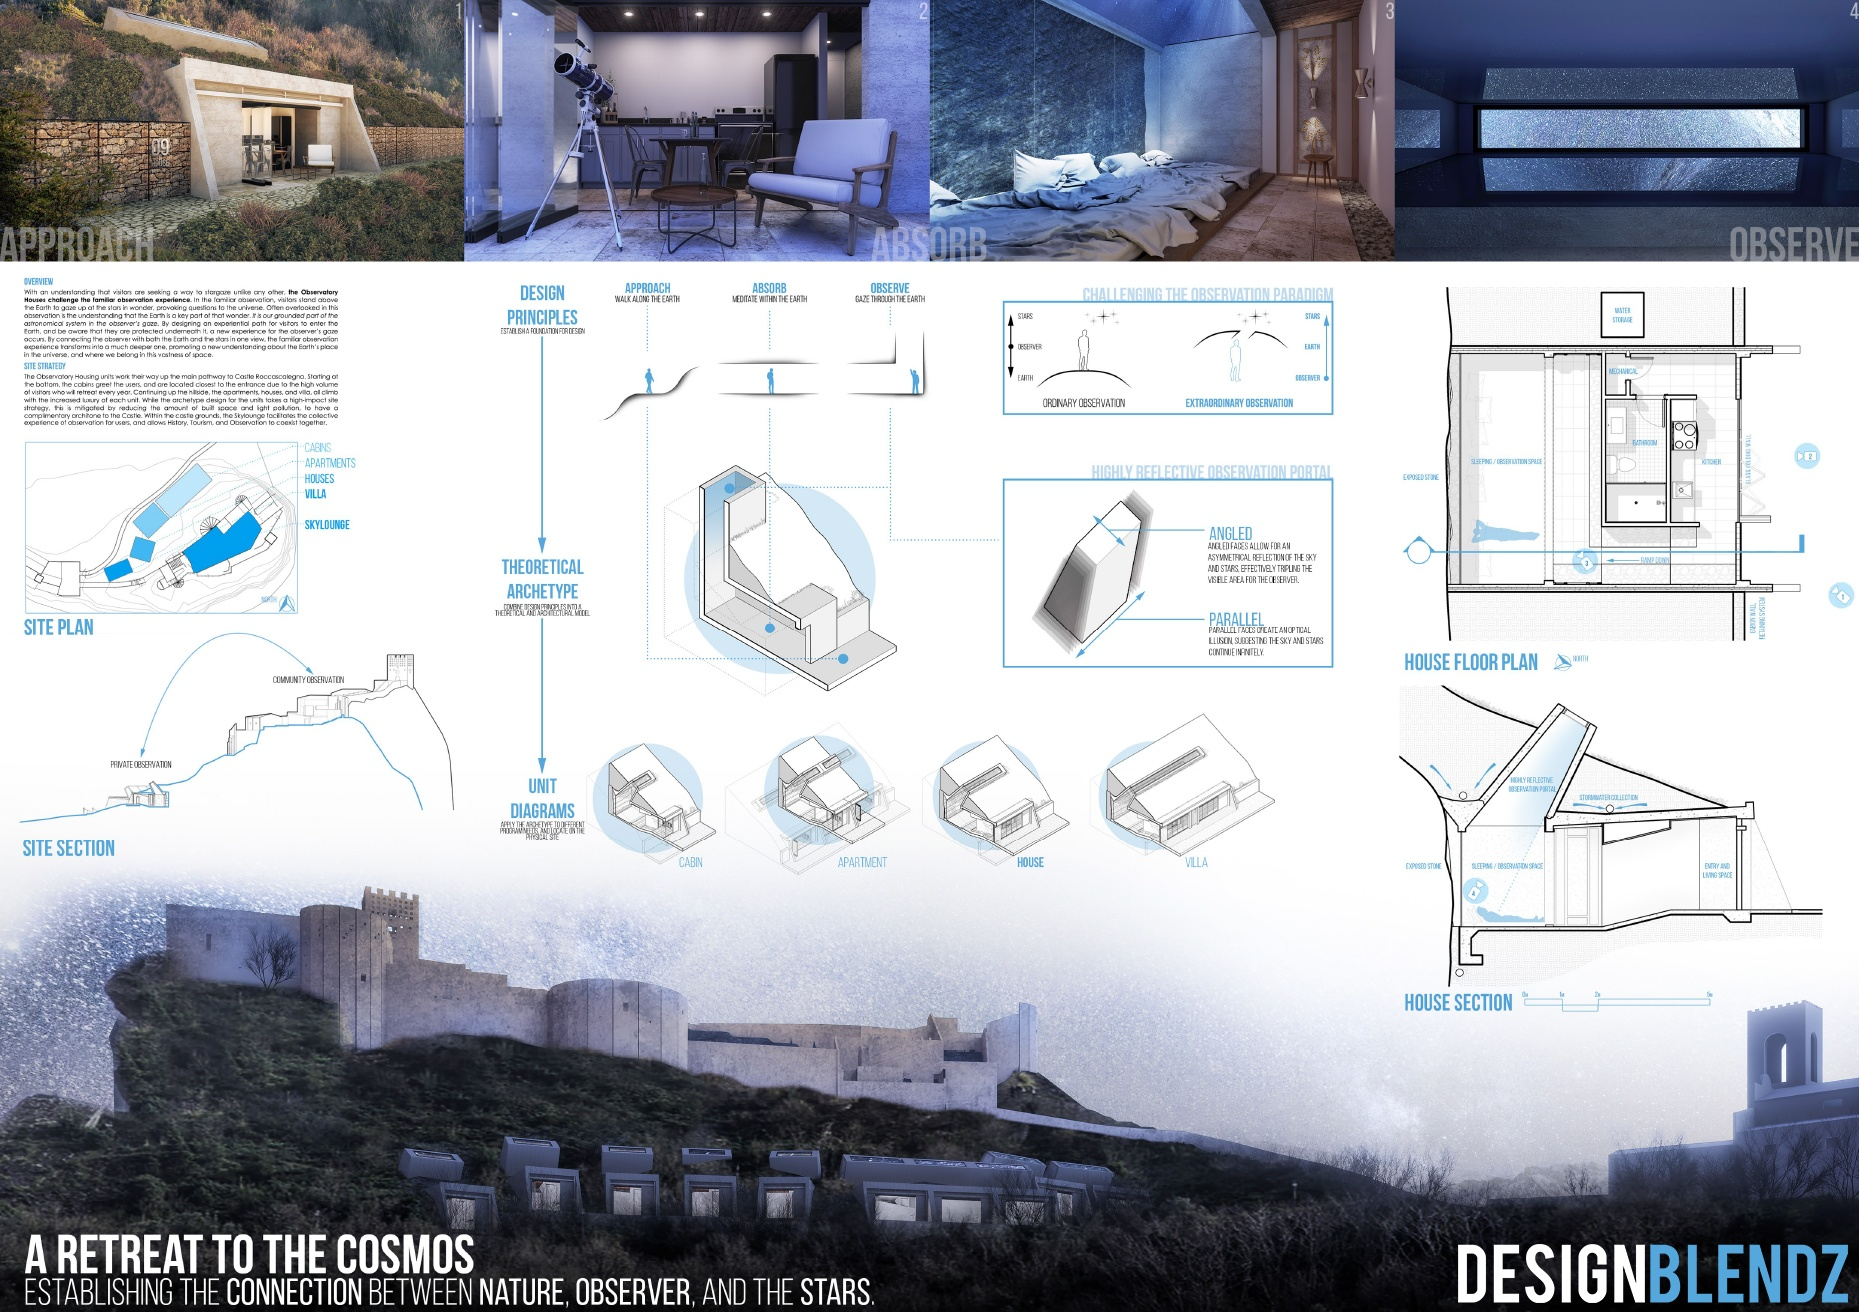 Our submission to the Observatory Houses competition hosted by YAC.